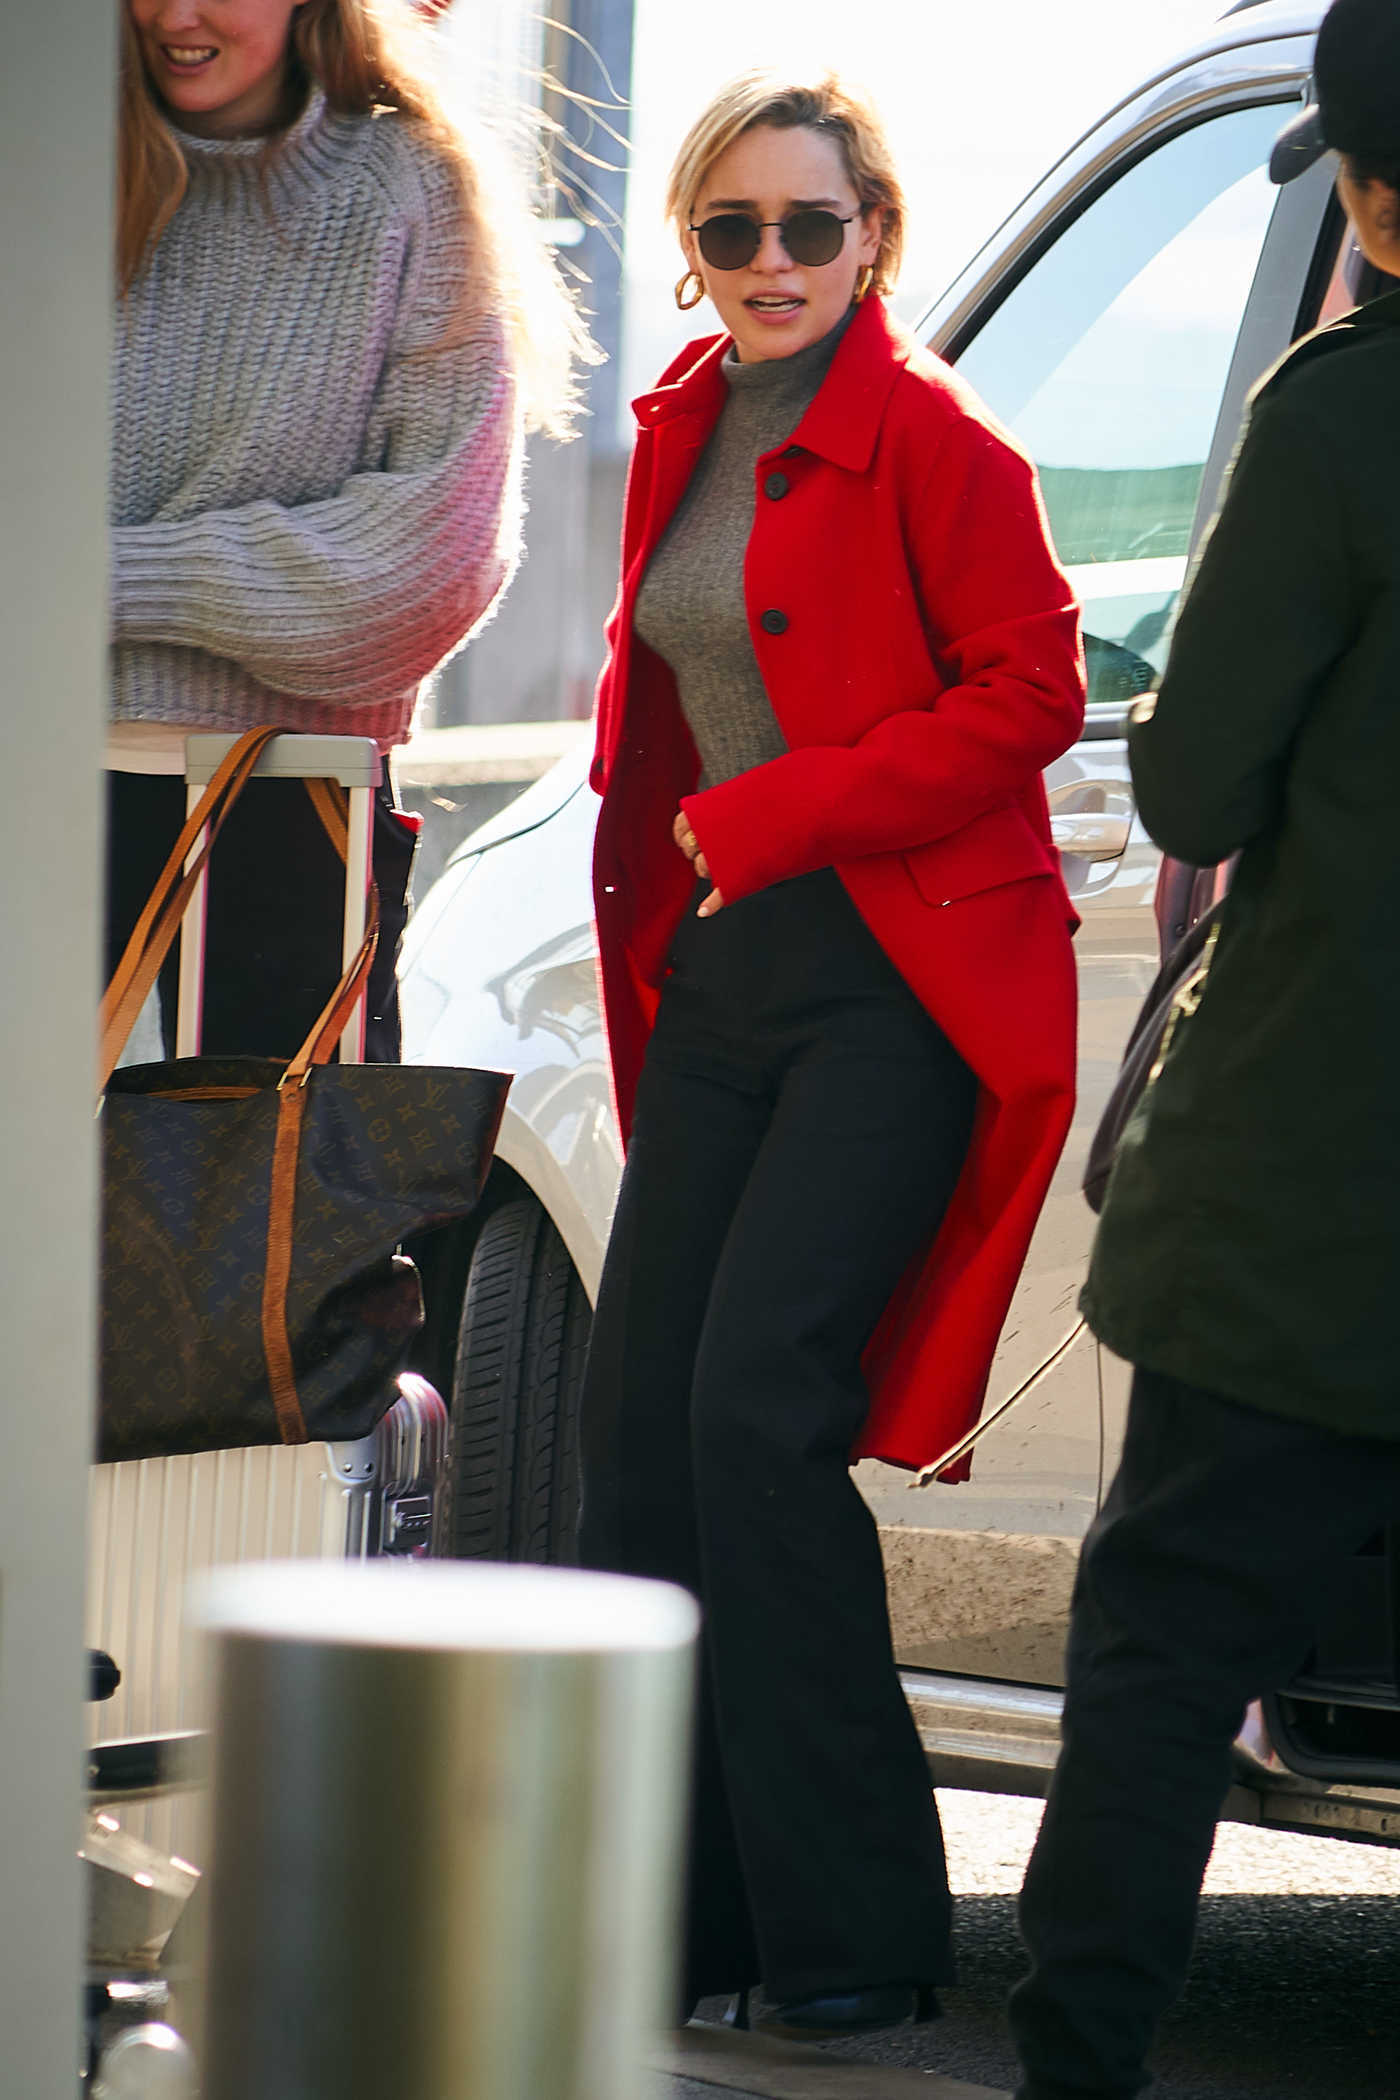 Emilia Clarke in a Red Coat Arrives at Heathrow Airport in London 02/21/2019